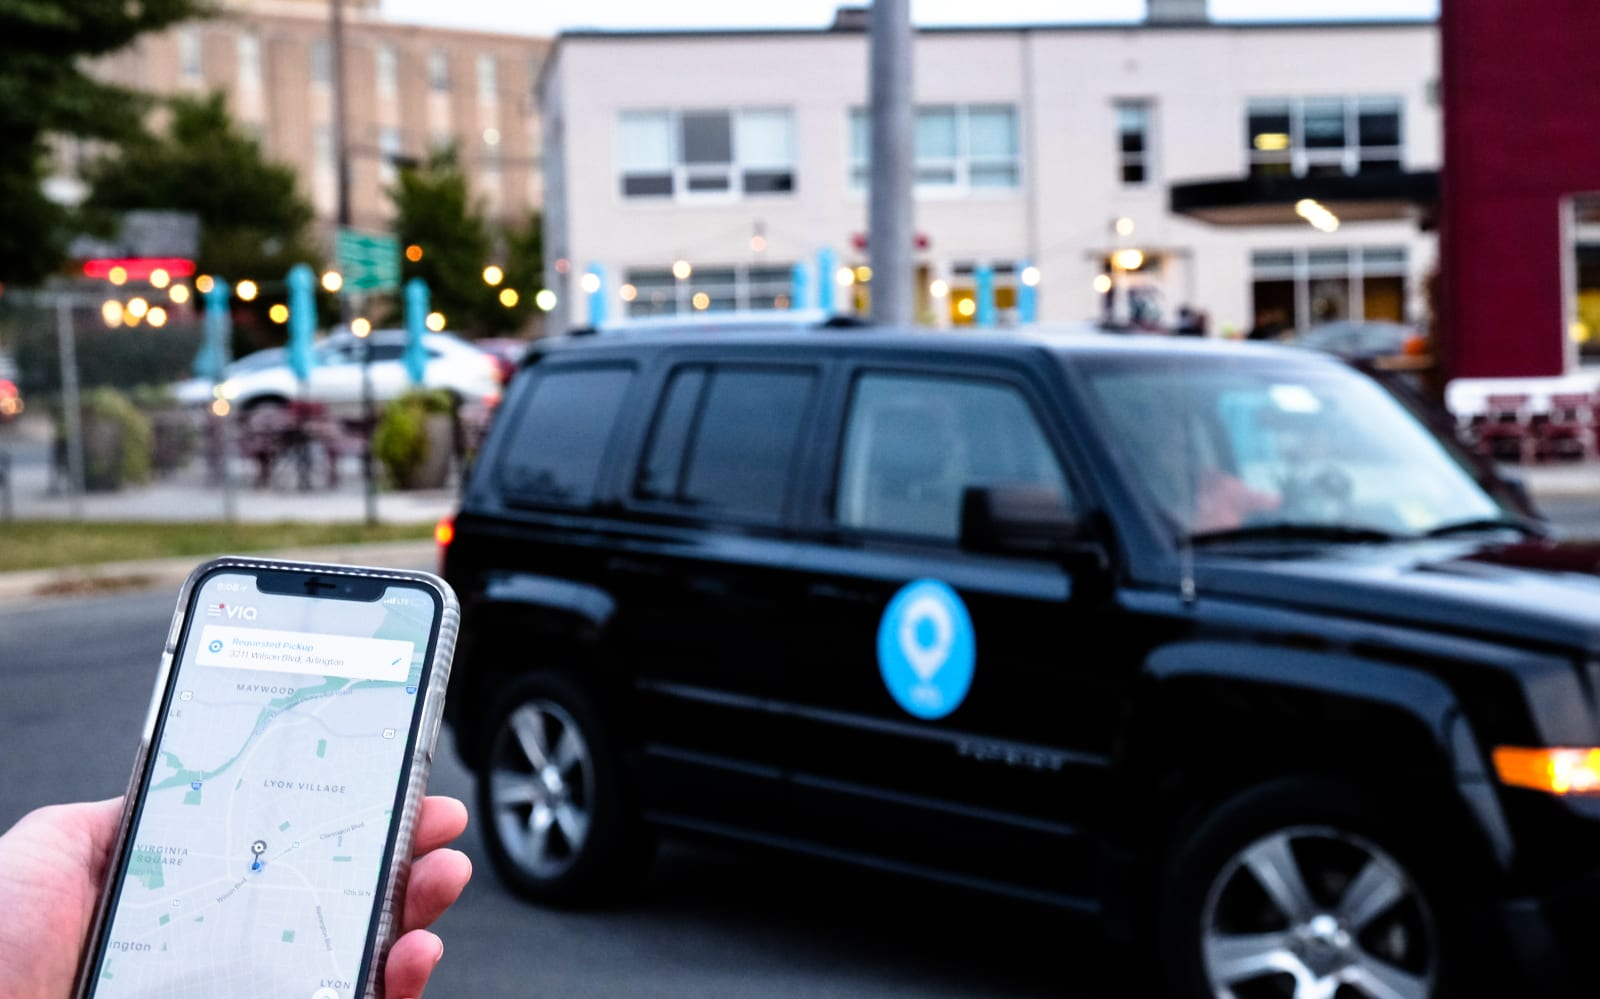 Via now provides veterans with free rides in the DC area